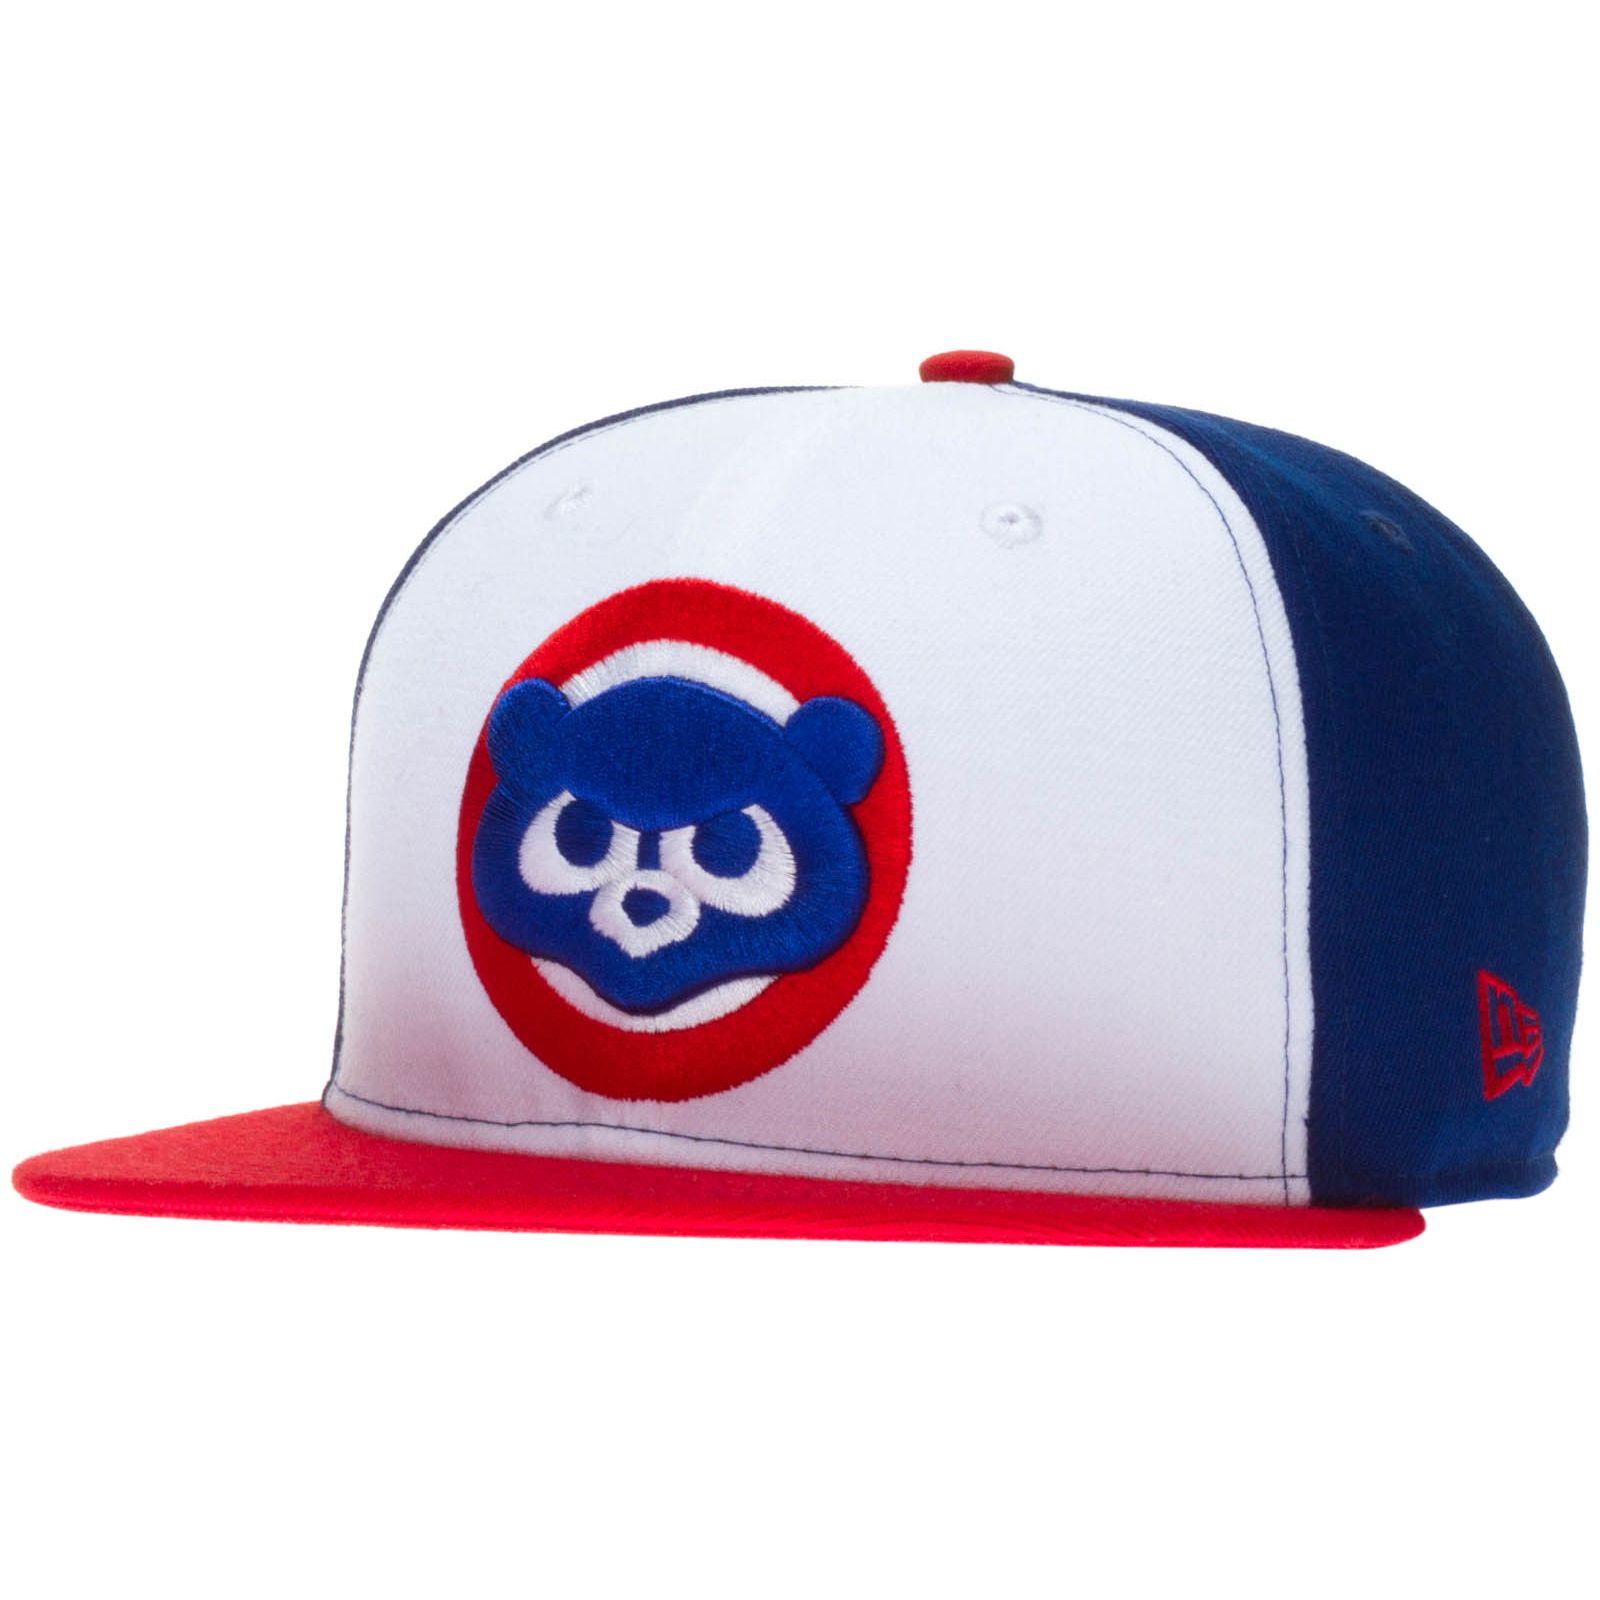 info for 9264b 36c1e italy chicago cubs red white and blue over size 1984 angry bear logo  snapback hat by